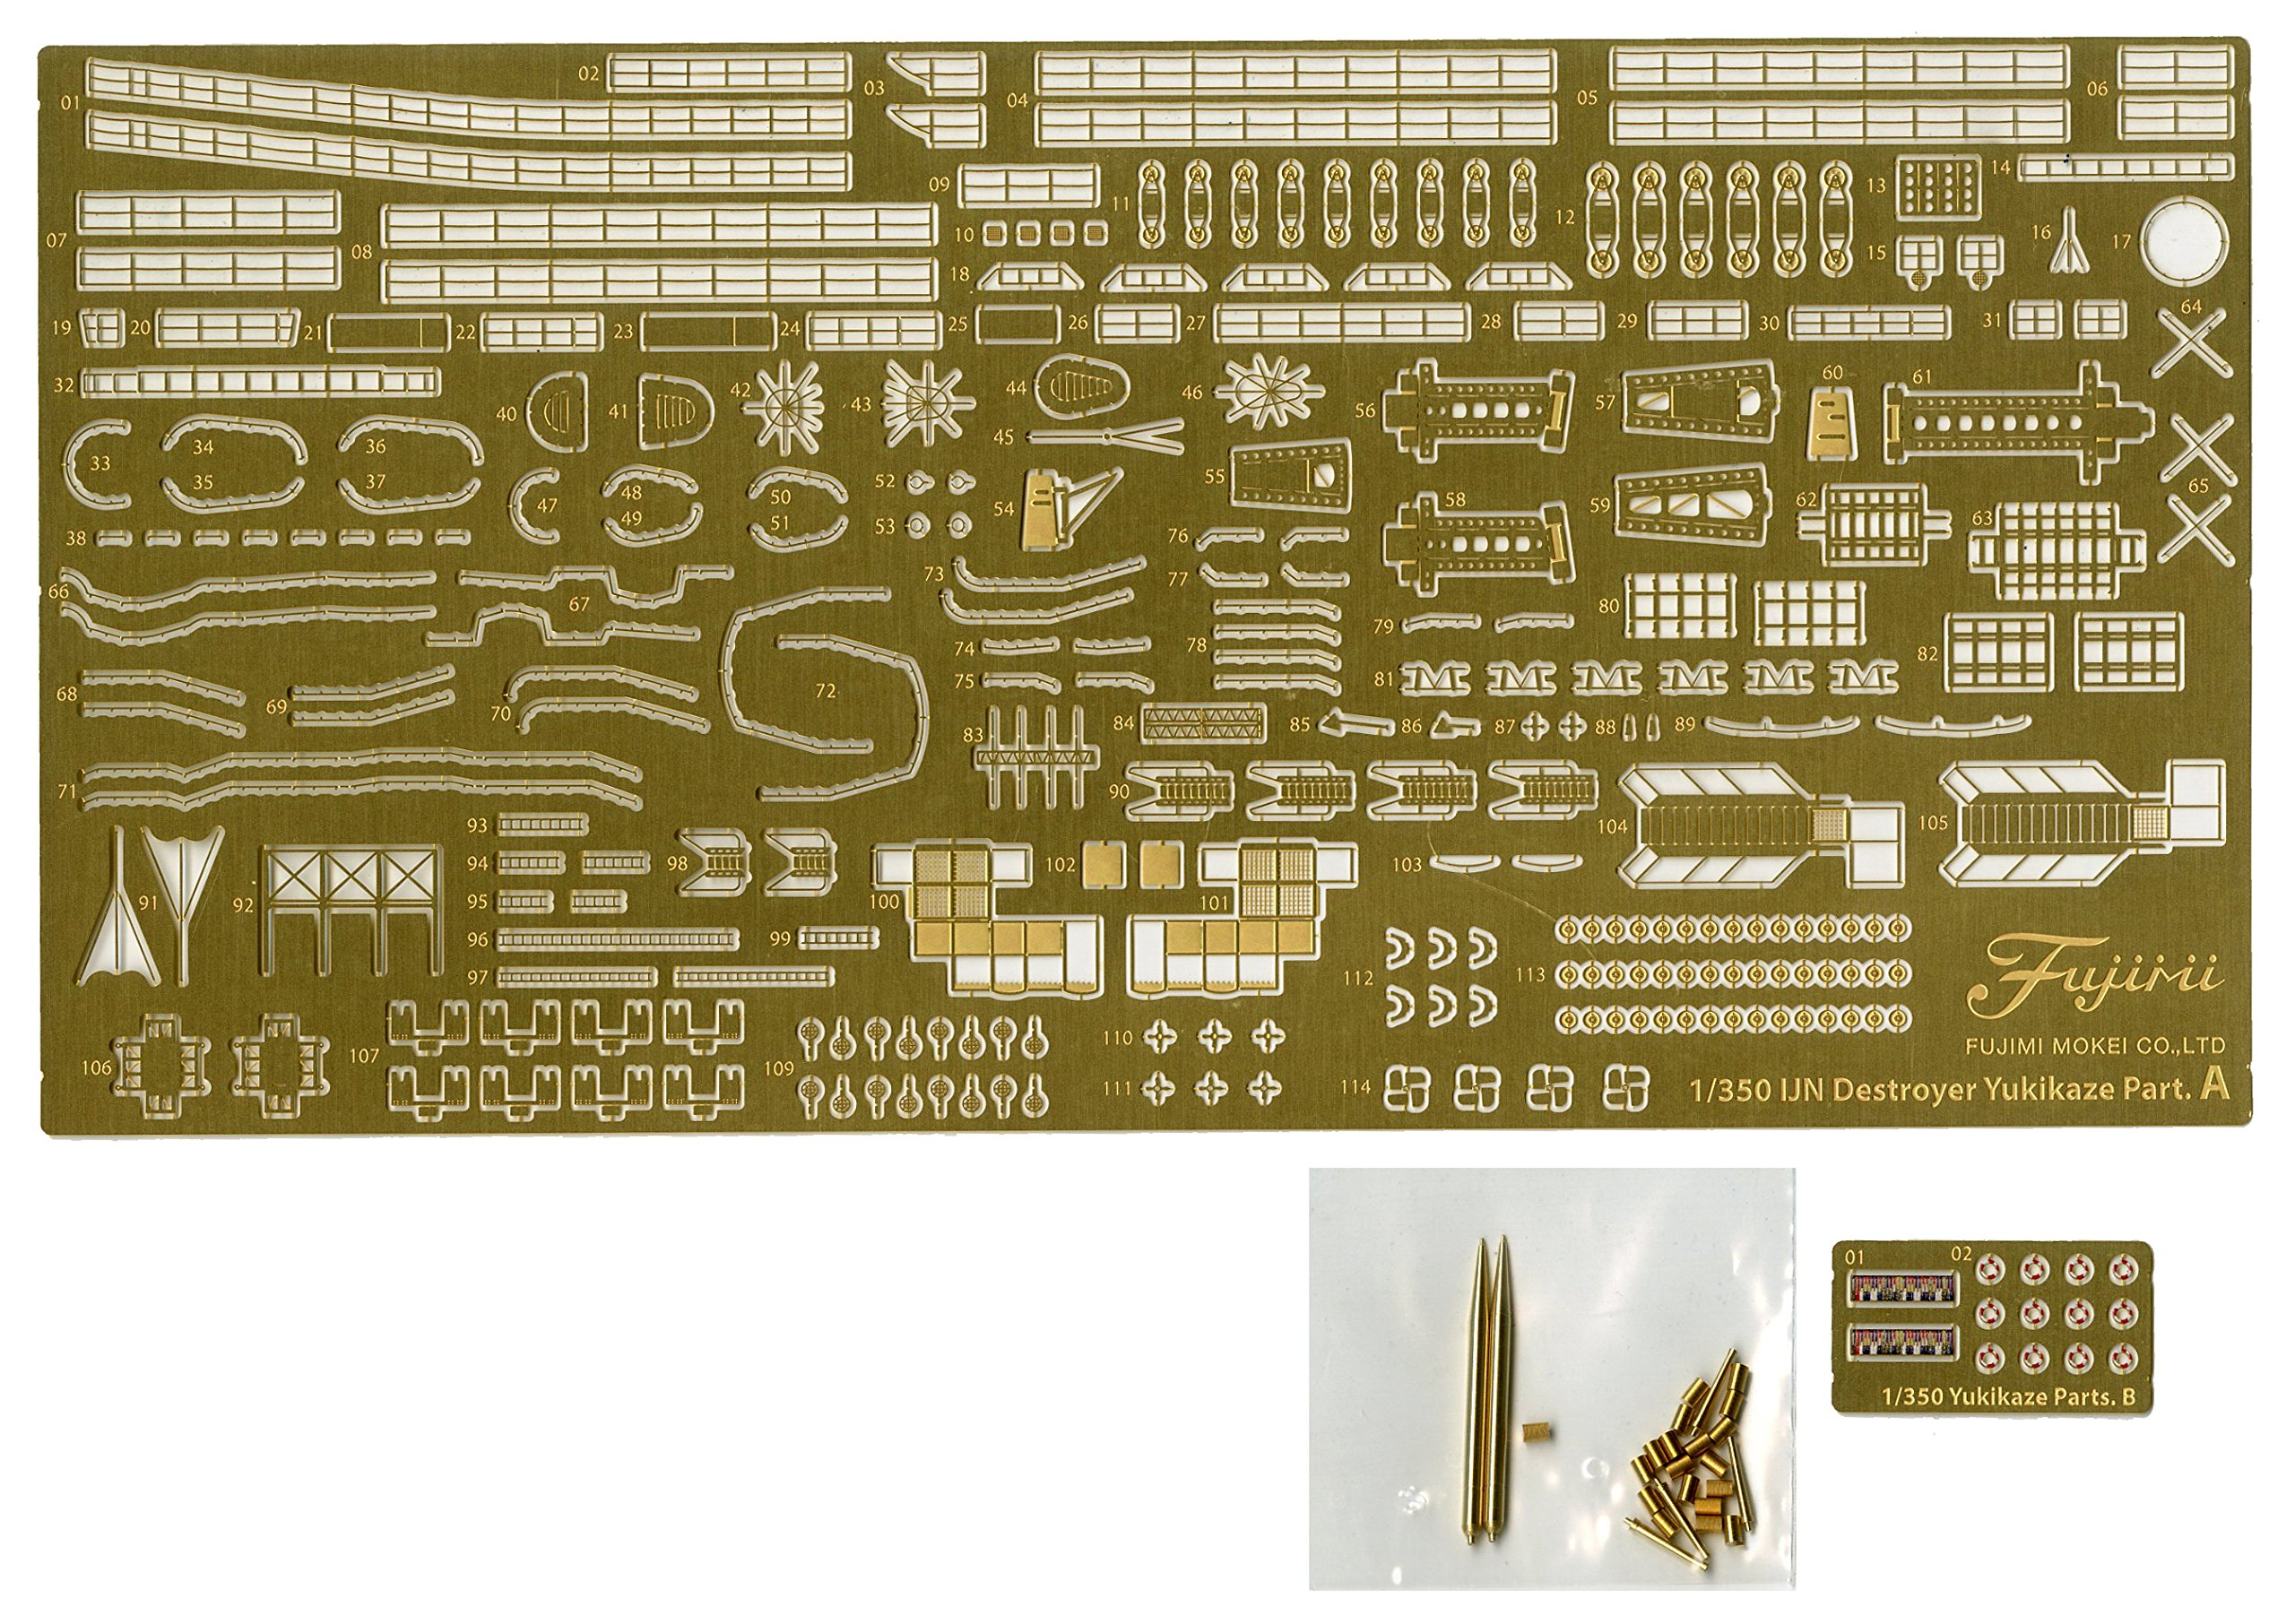 Fujimi model Photo-etched parts For plastic parts